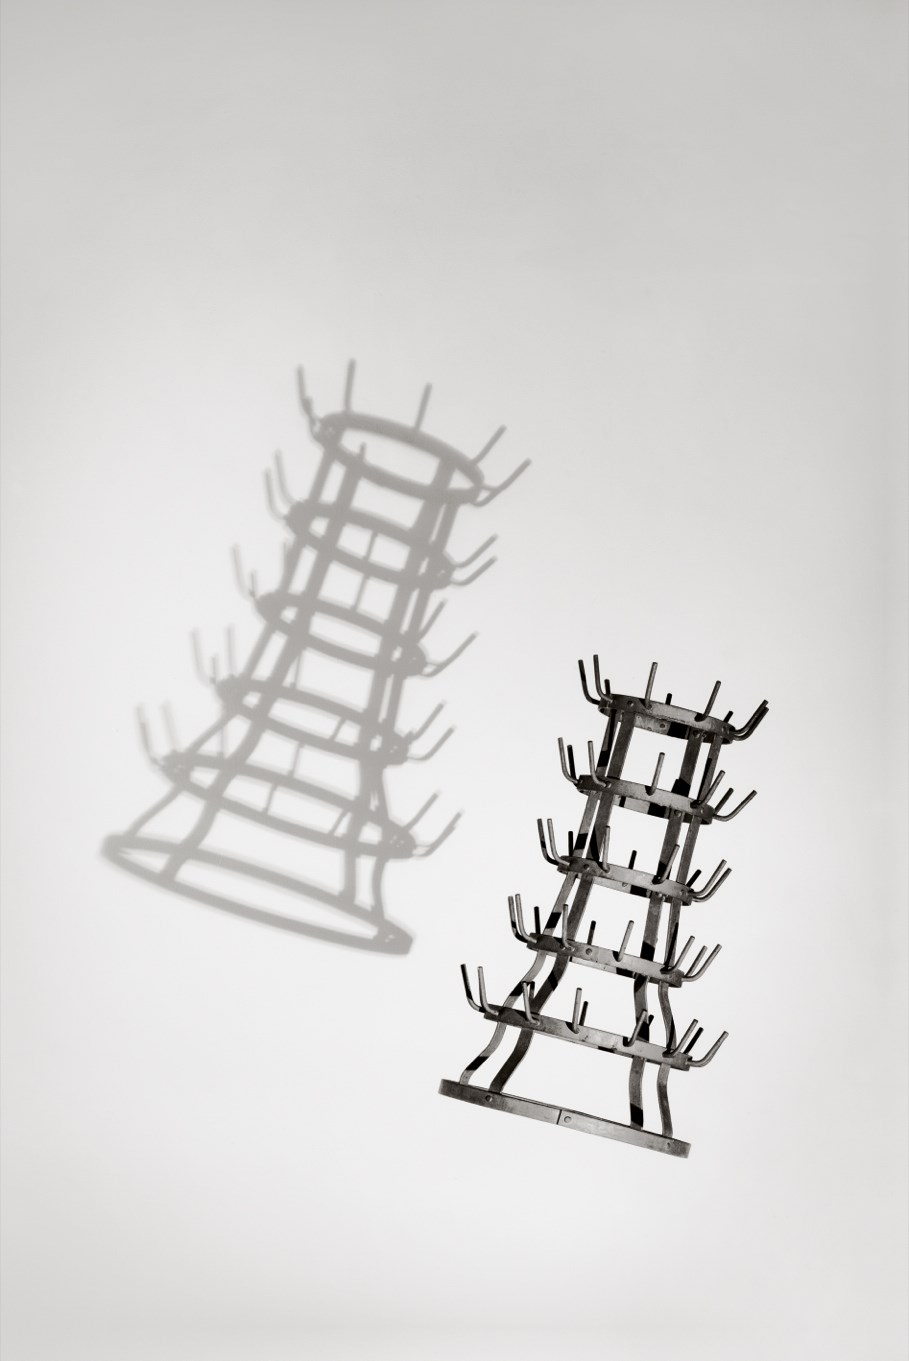 Art Institute of Chicago Announced Acquisition of Marcel Duchamp's Readymade Bottle Rack